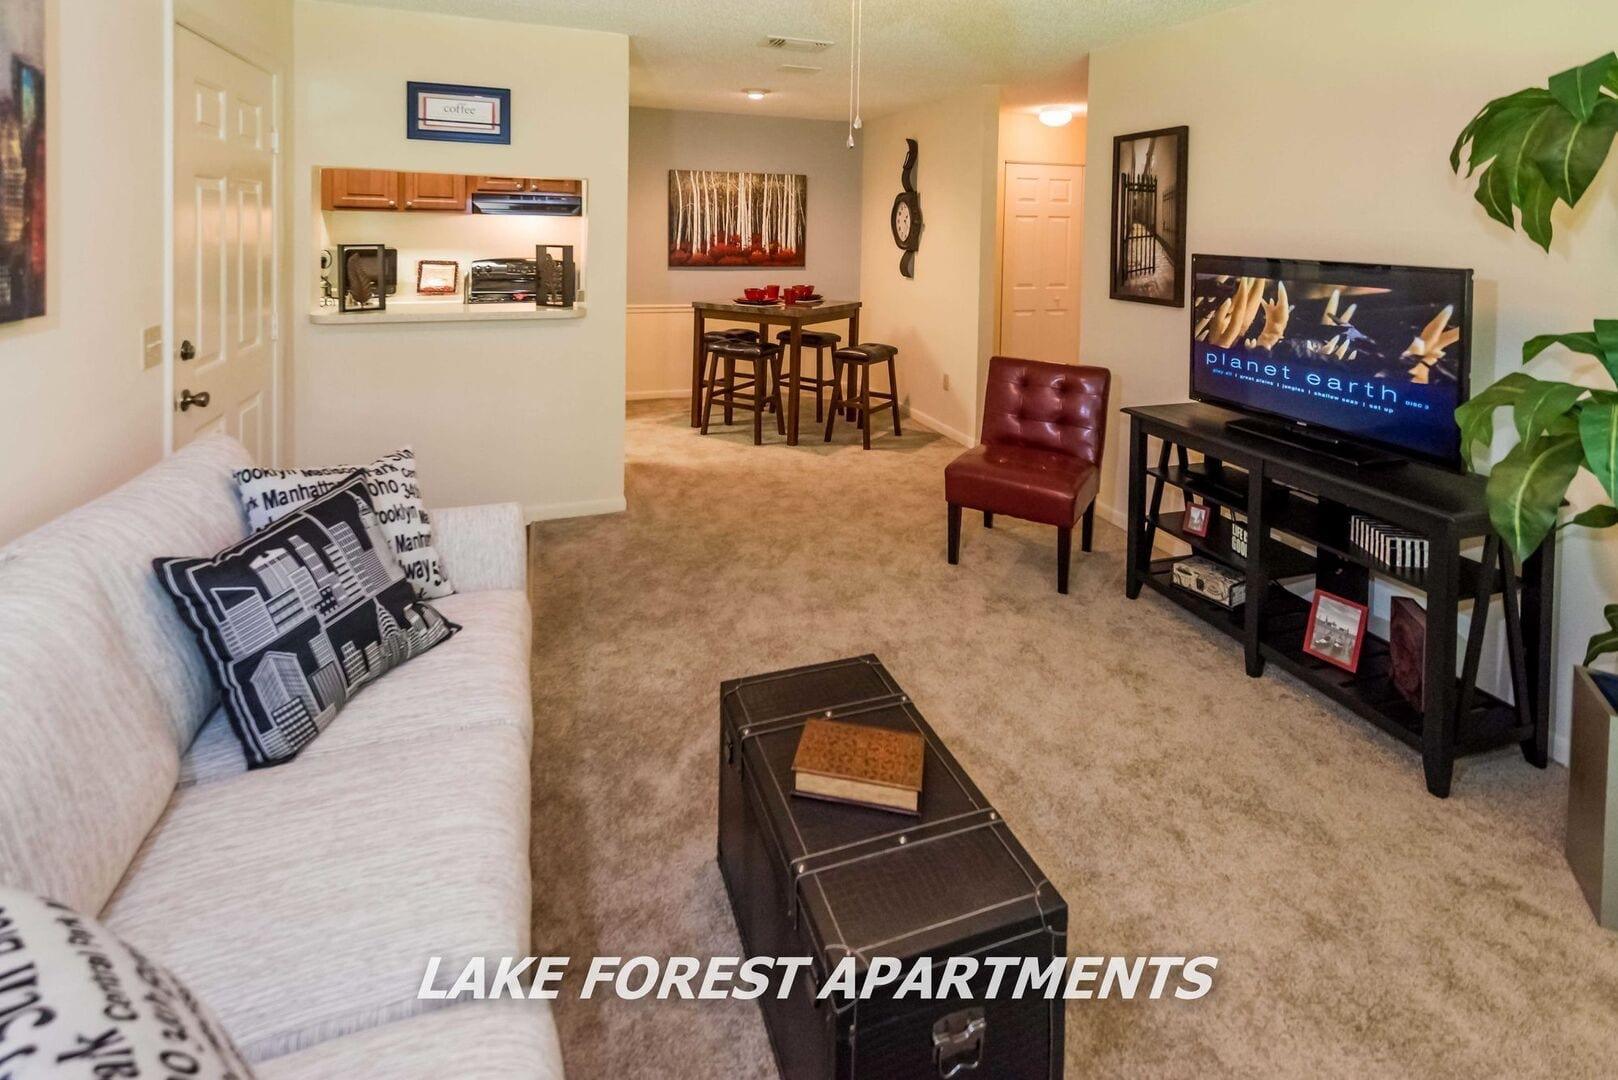 Lake Forest Apartments for Rent in Daytona Beach